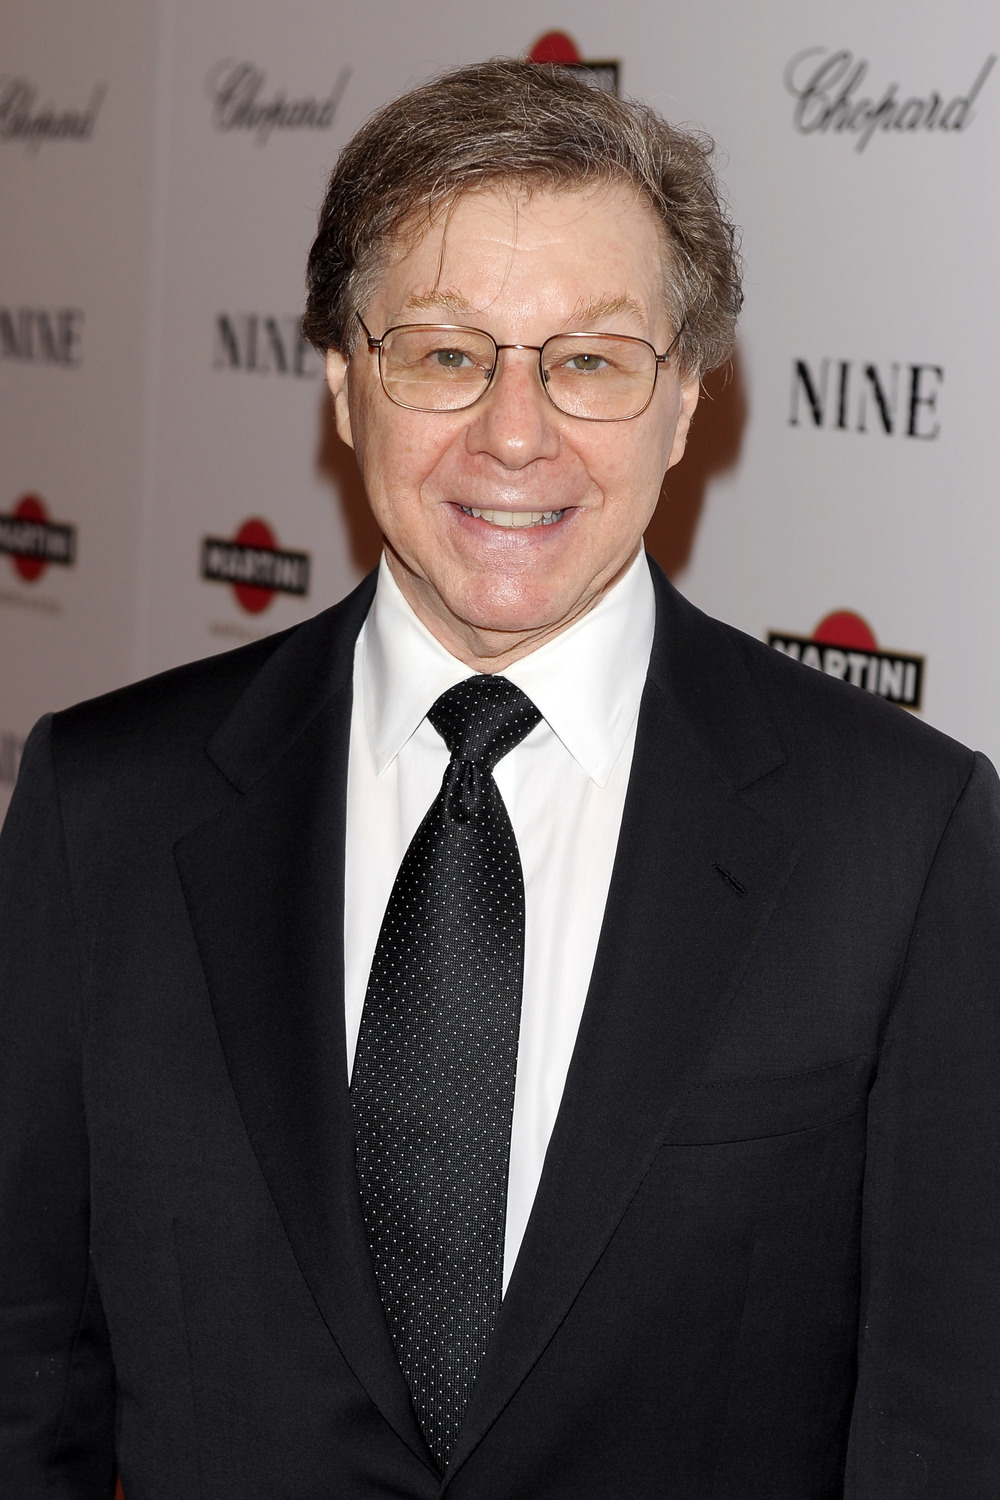 Multi Tony Award winning composer Maury Yeston